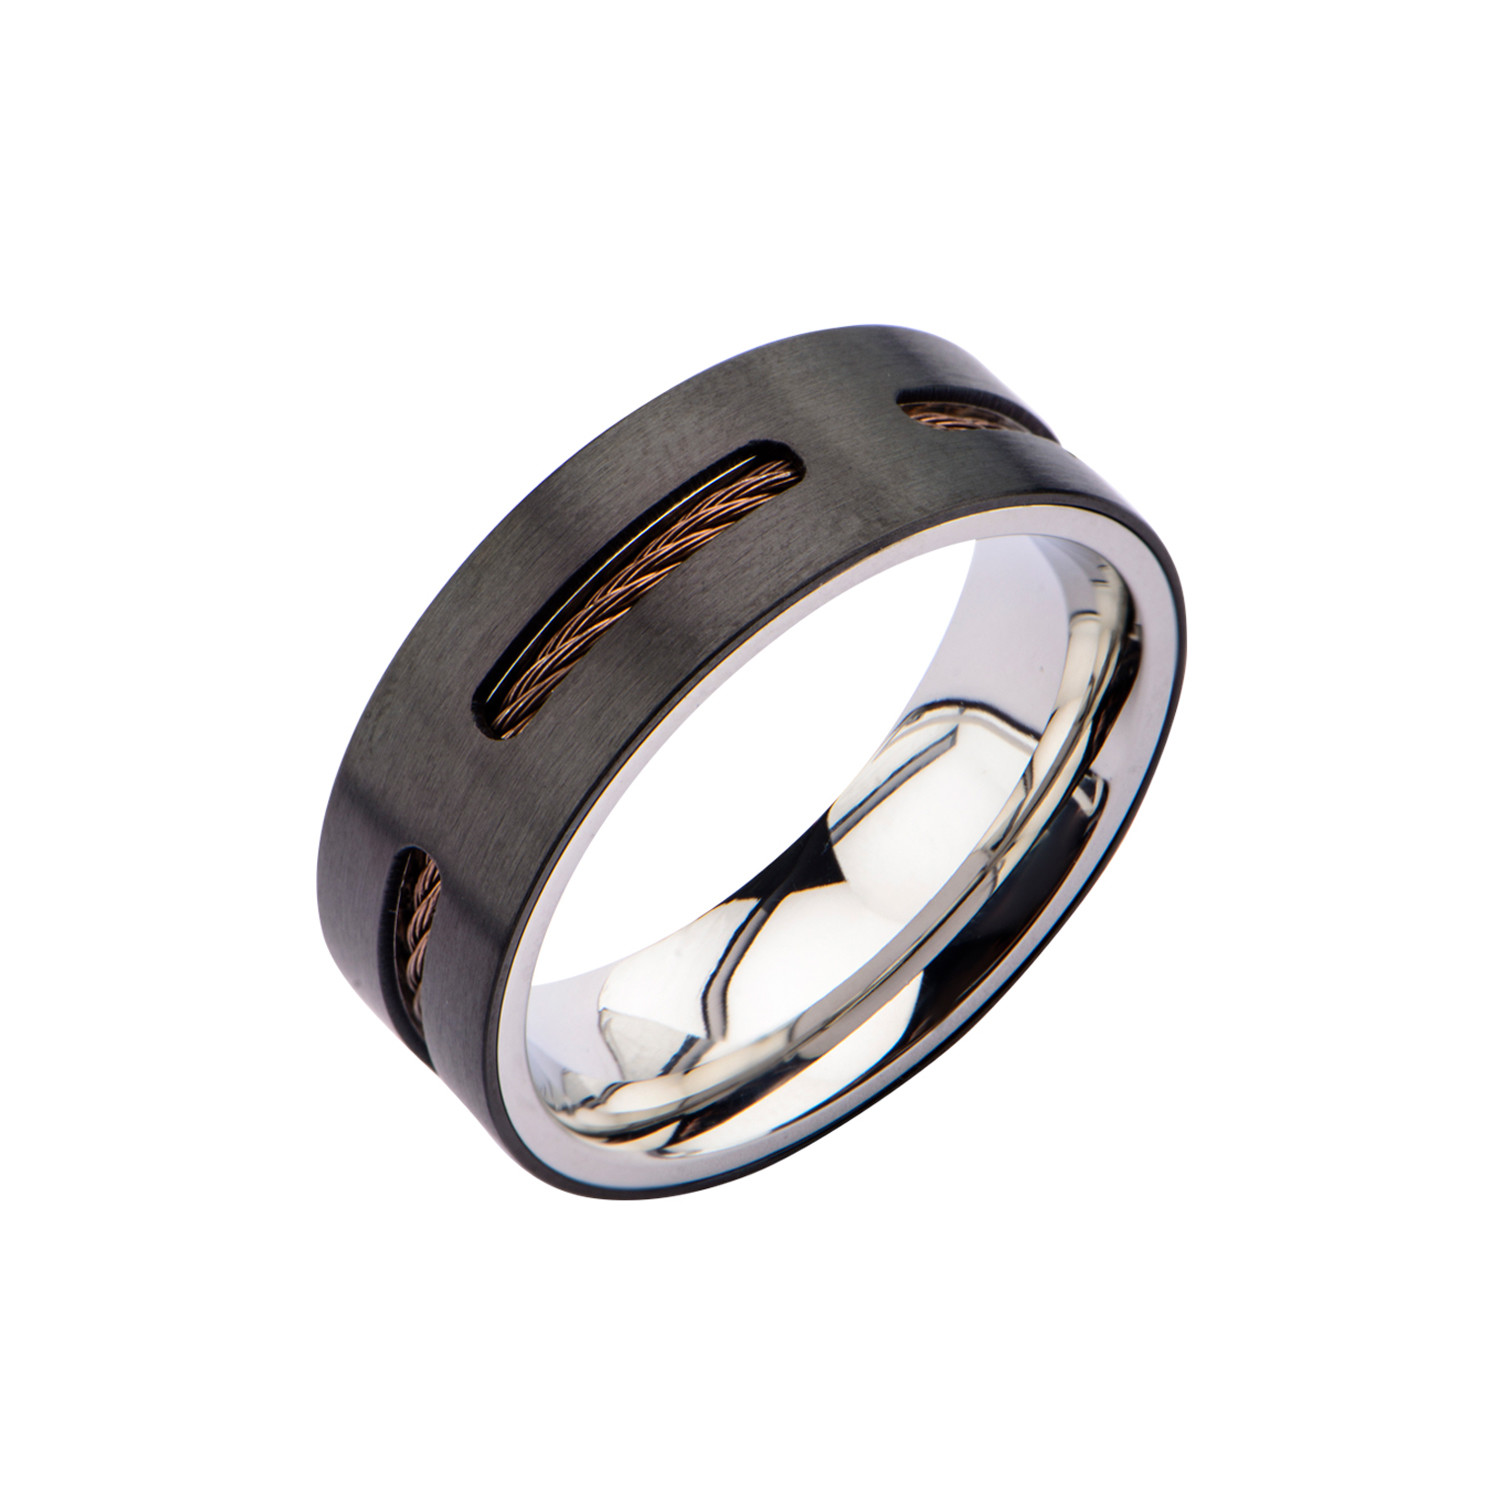 stainless steel cable window inlay ring black brown size 9 inox rings touch of modern. Black Bedroom Furniture Sets. Home Design Ideas